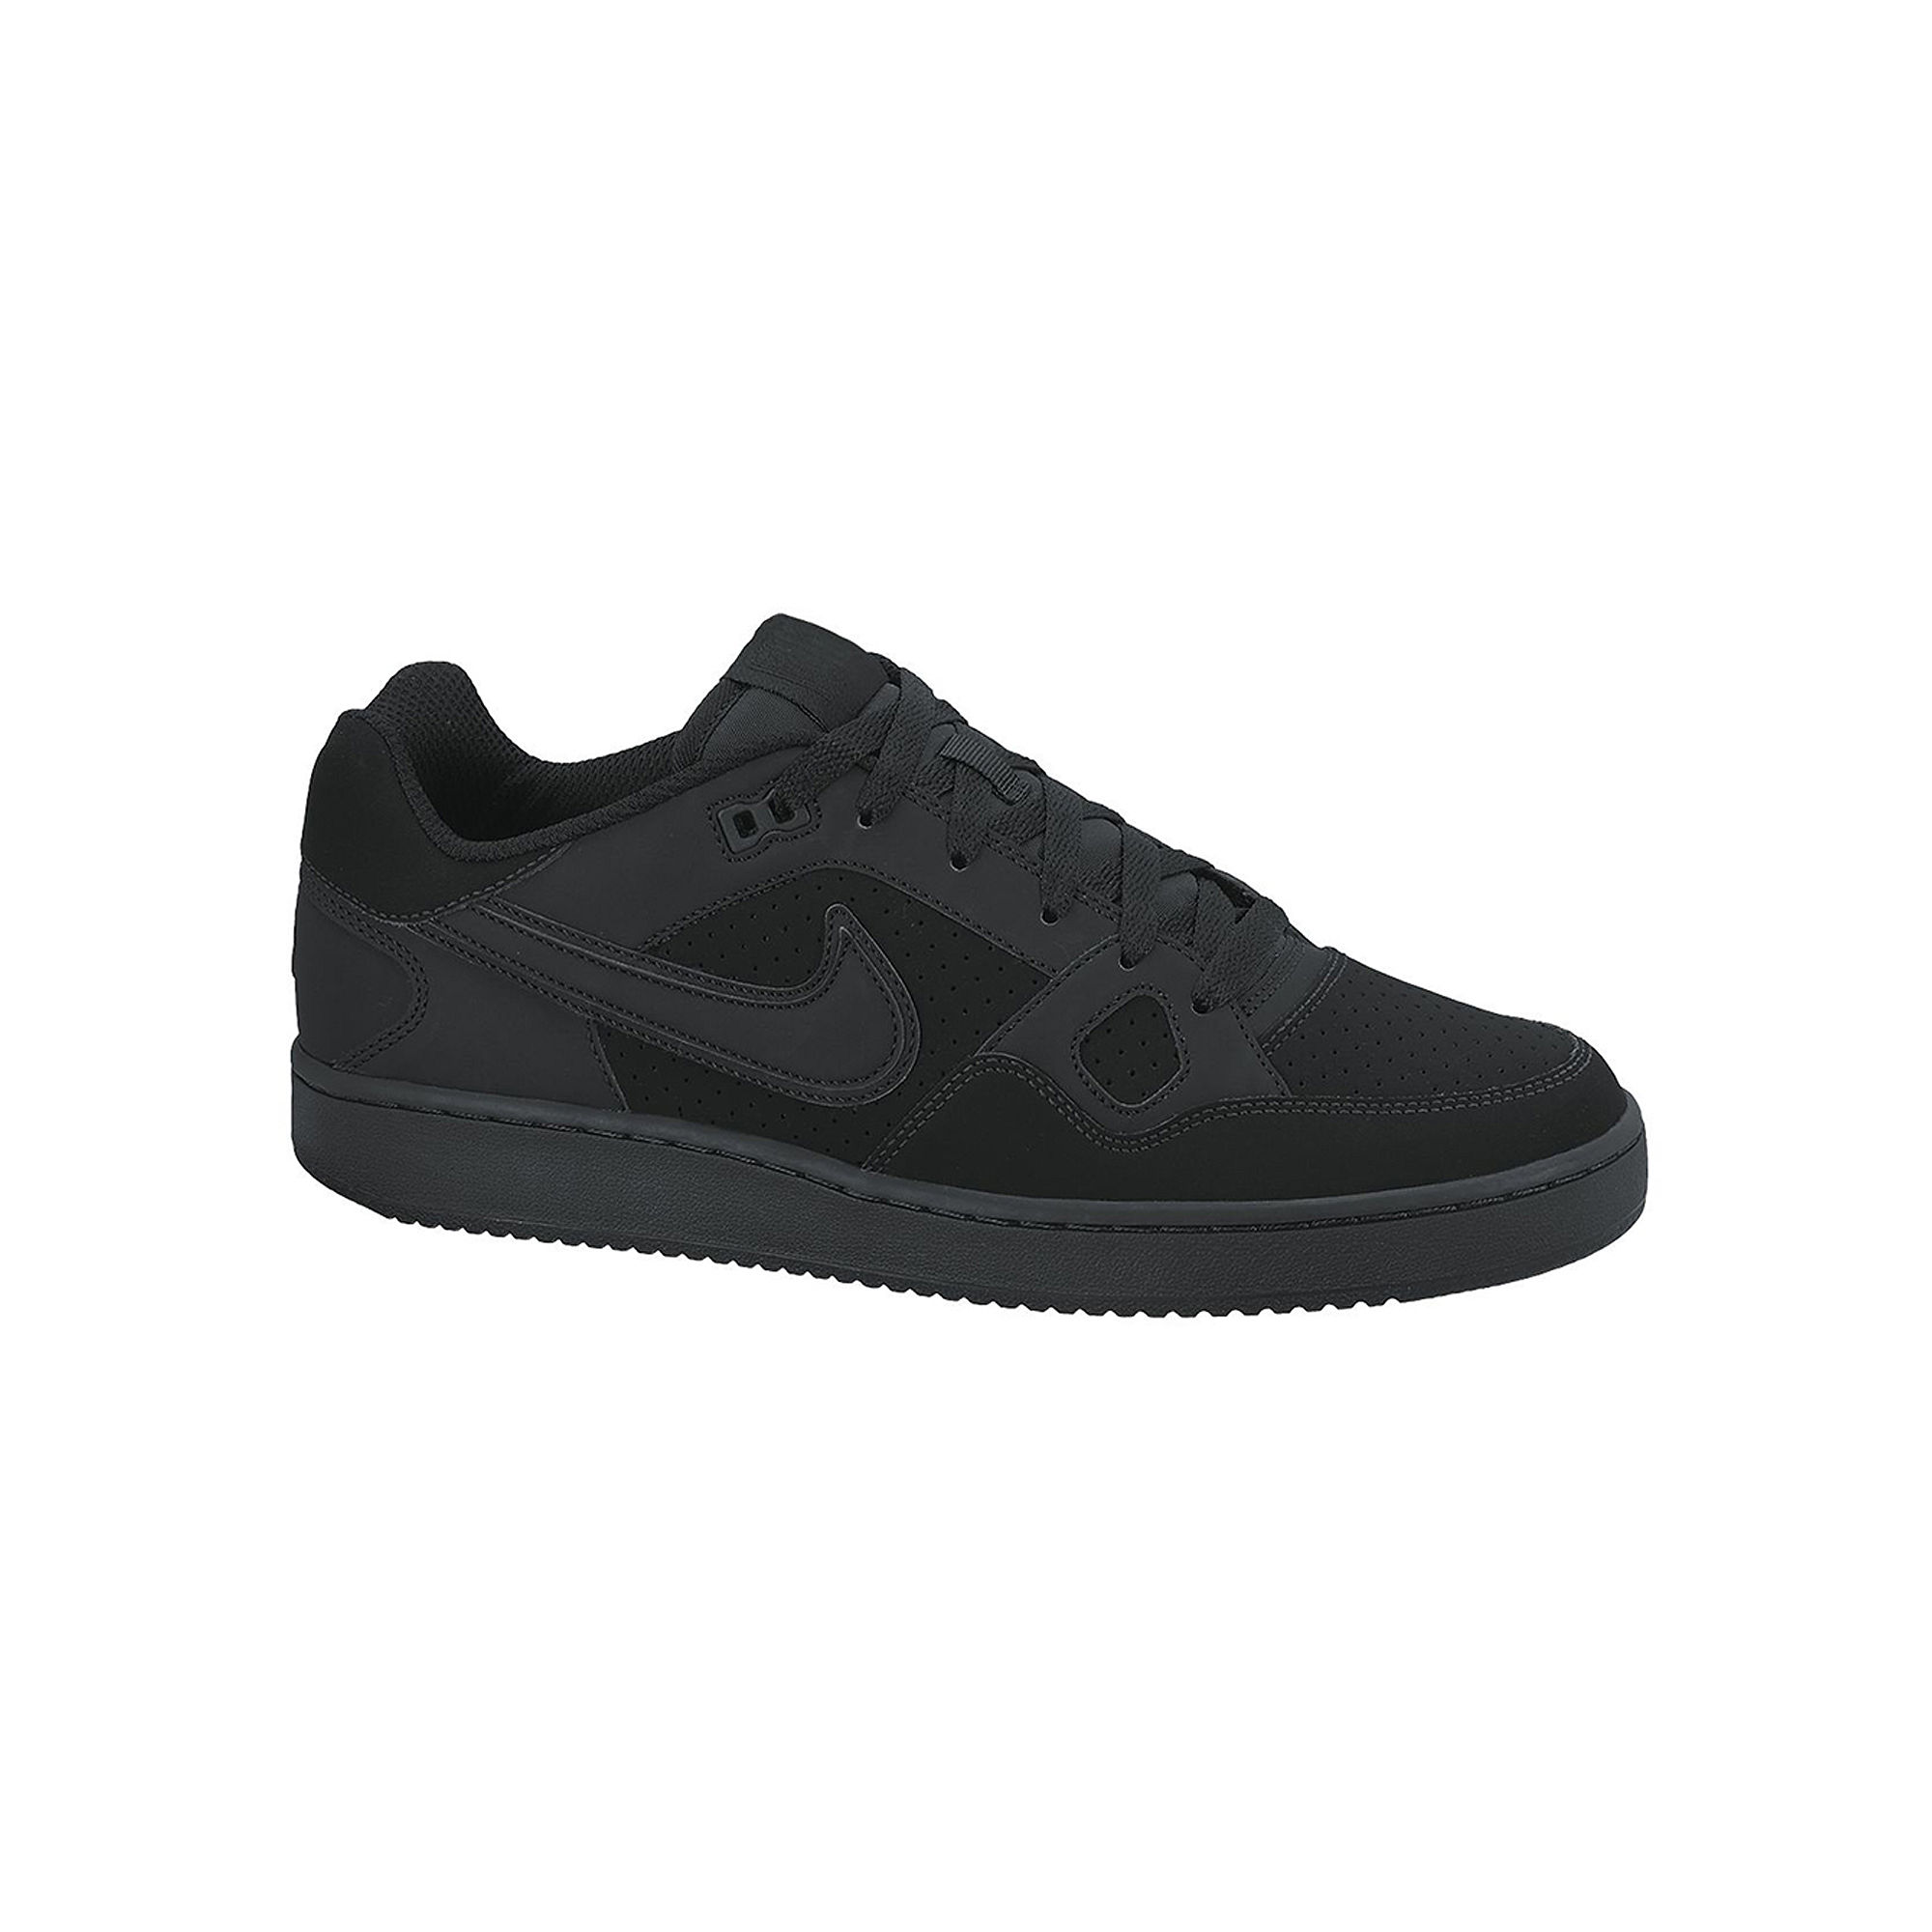 ... low cost upc 887229621762 product image for nike sons of force mens low  top basketball shoes 8c79cd033